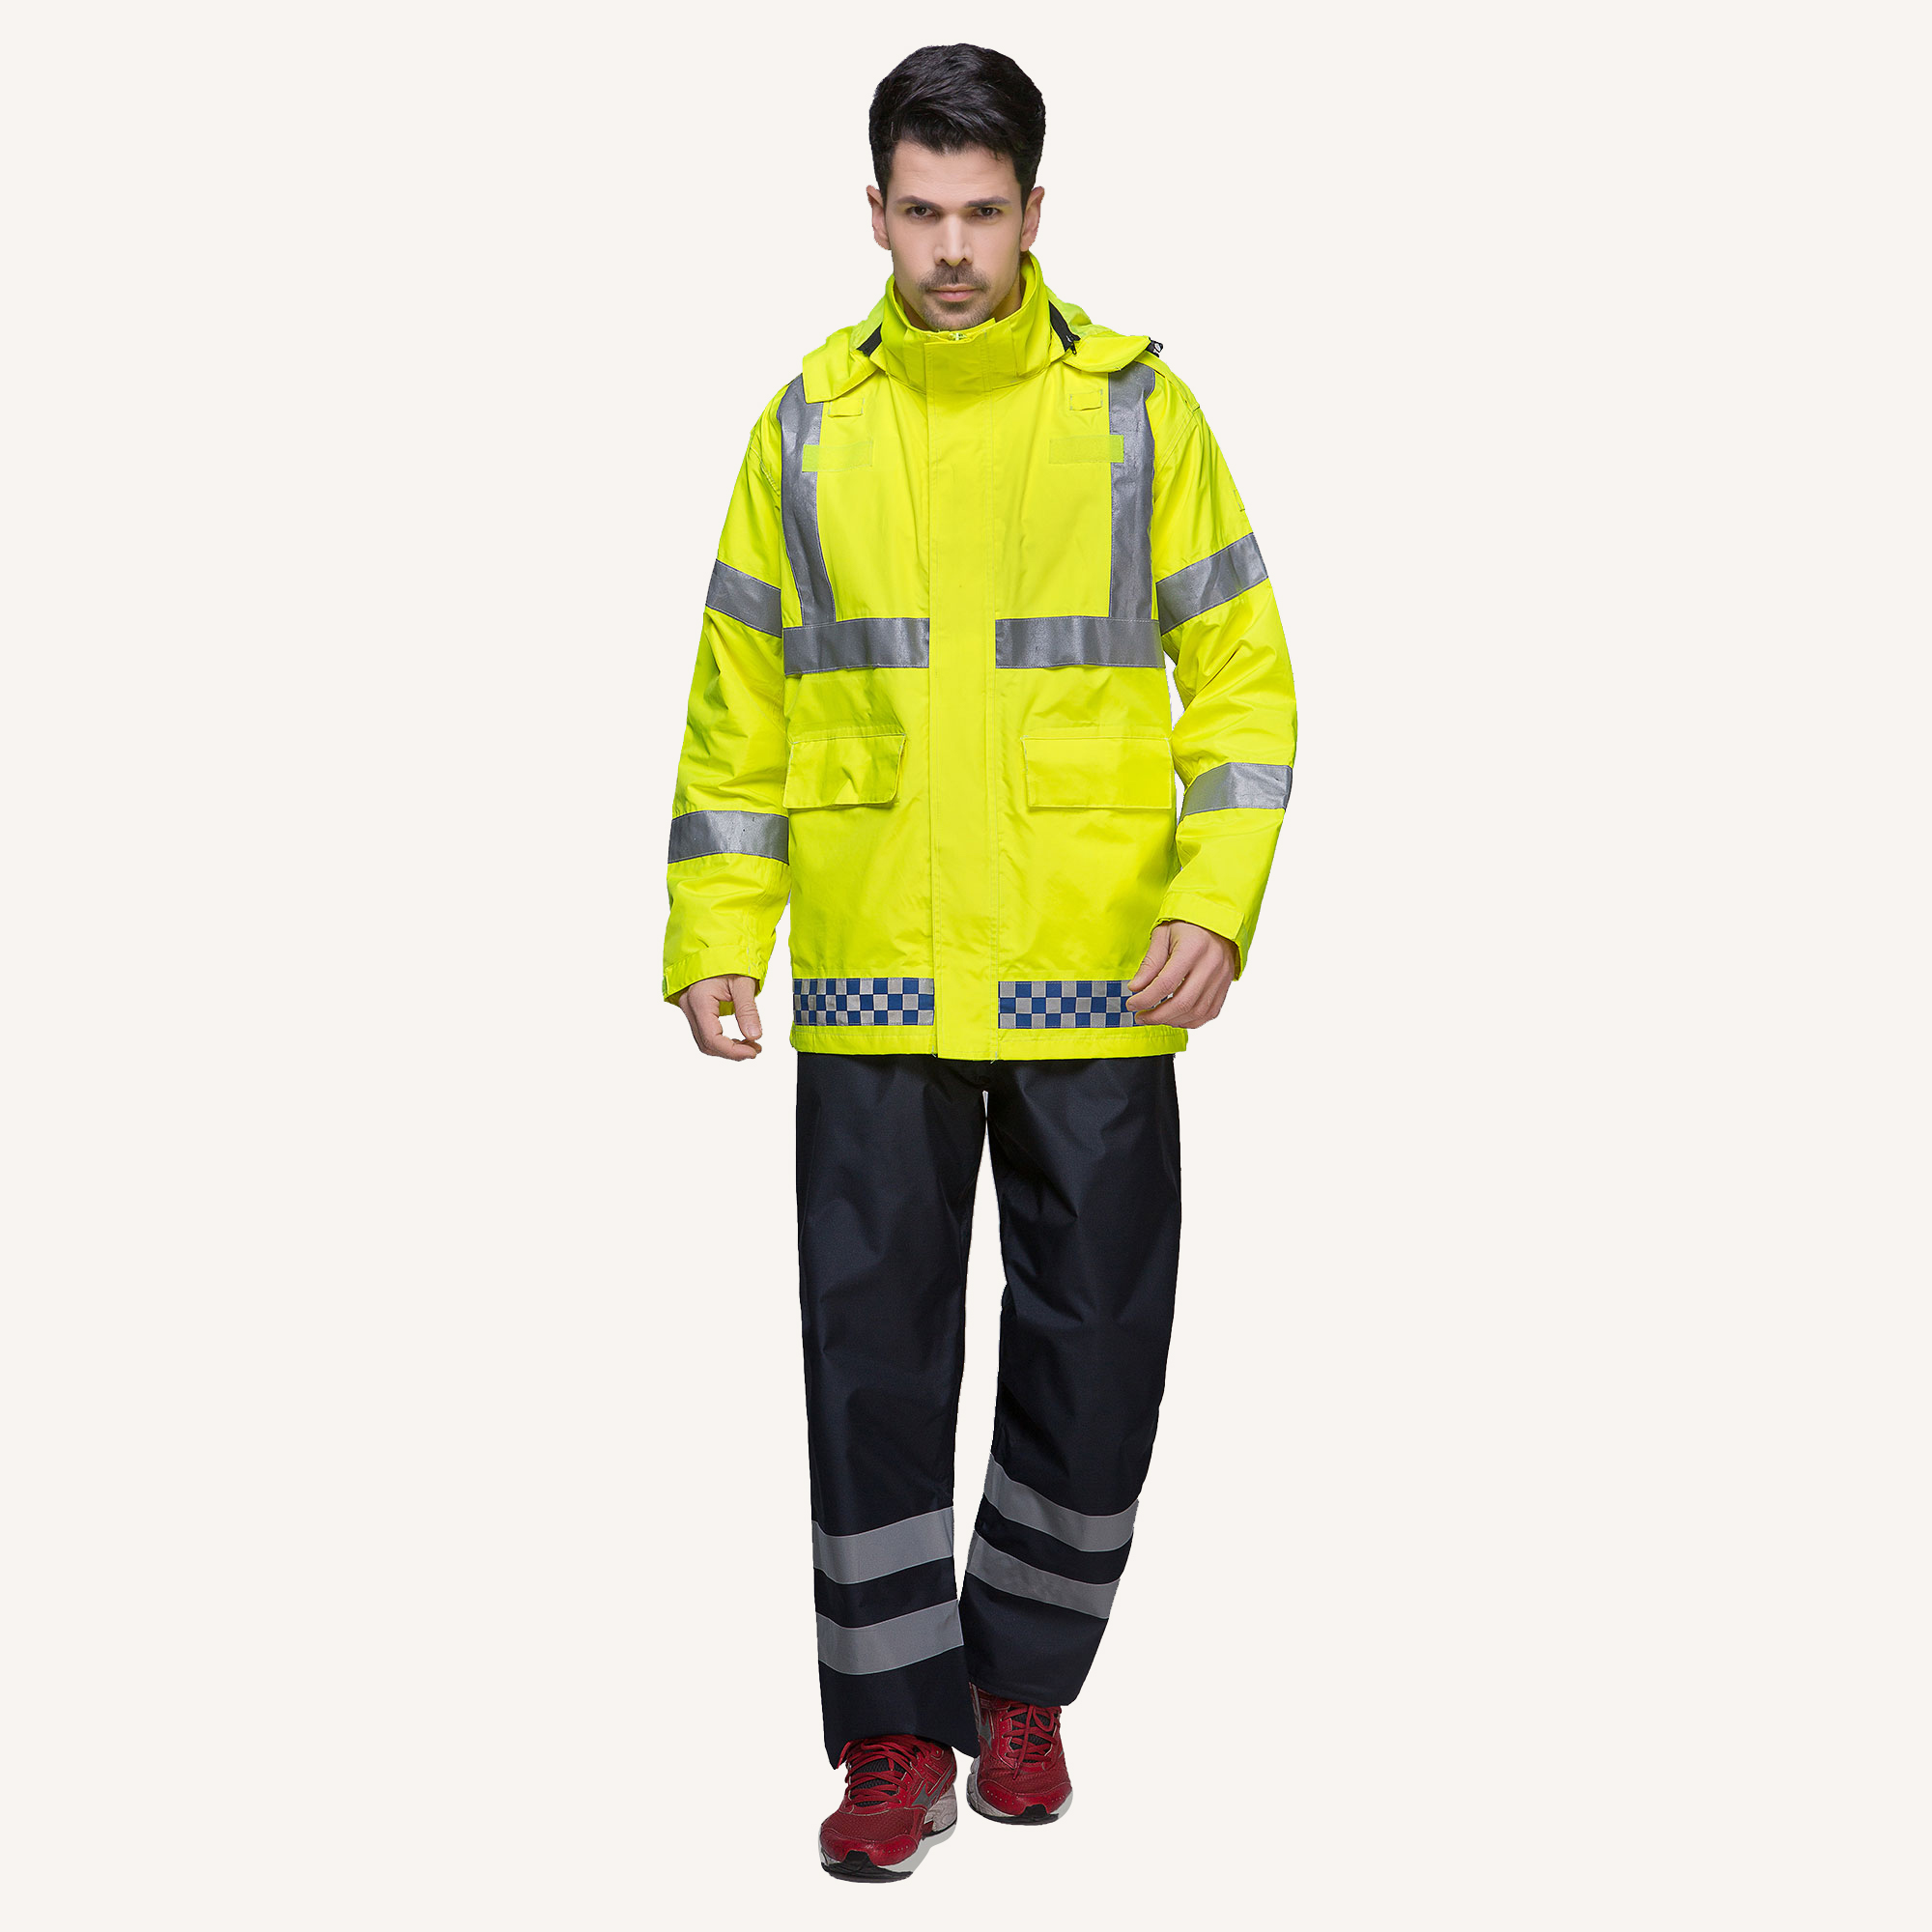 6999  Waterproof jacket pants set for men